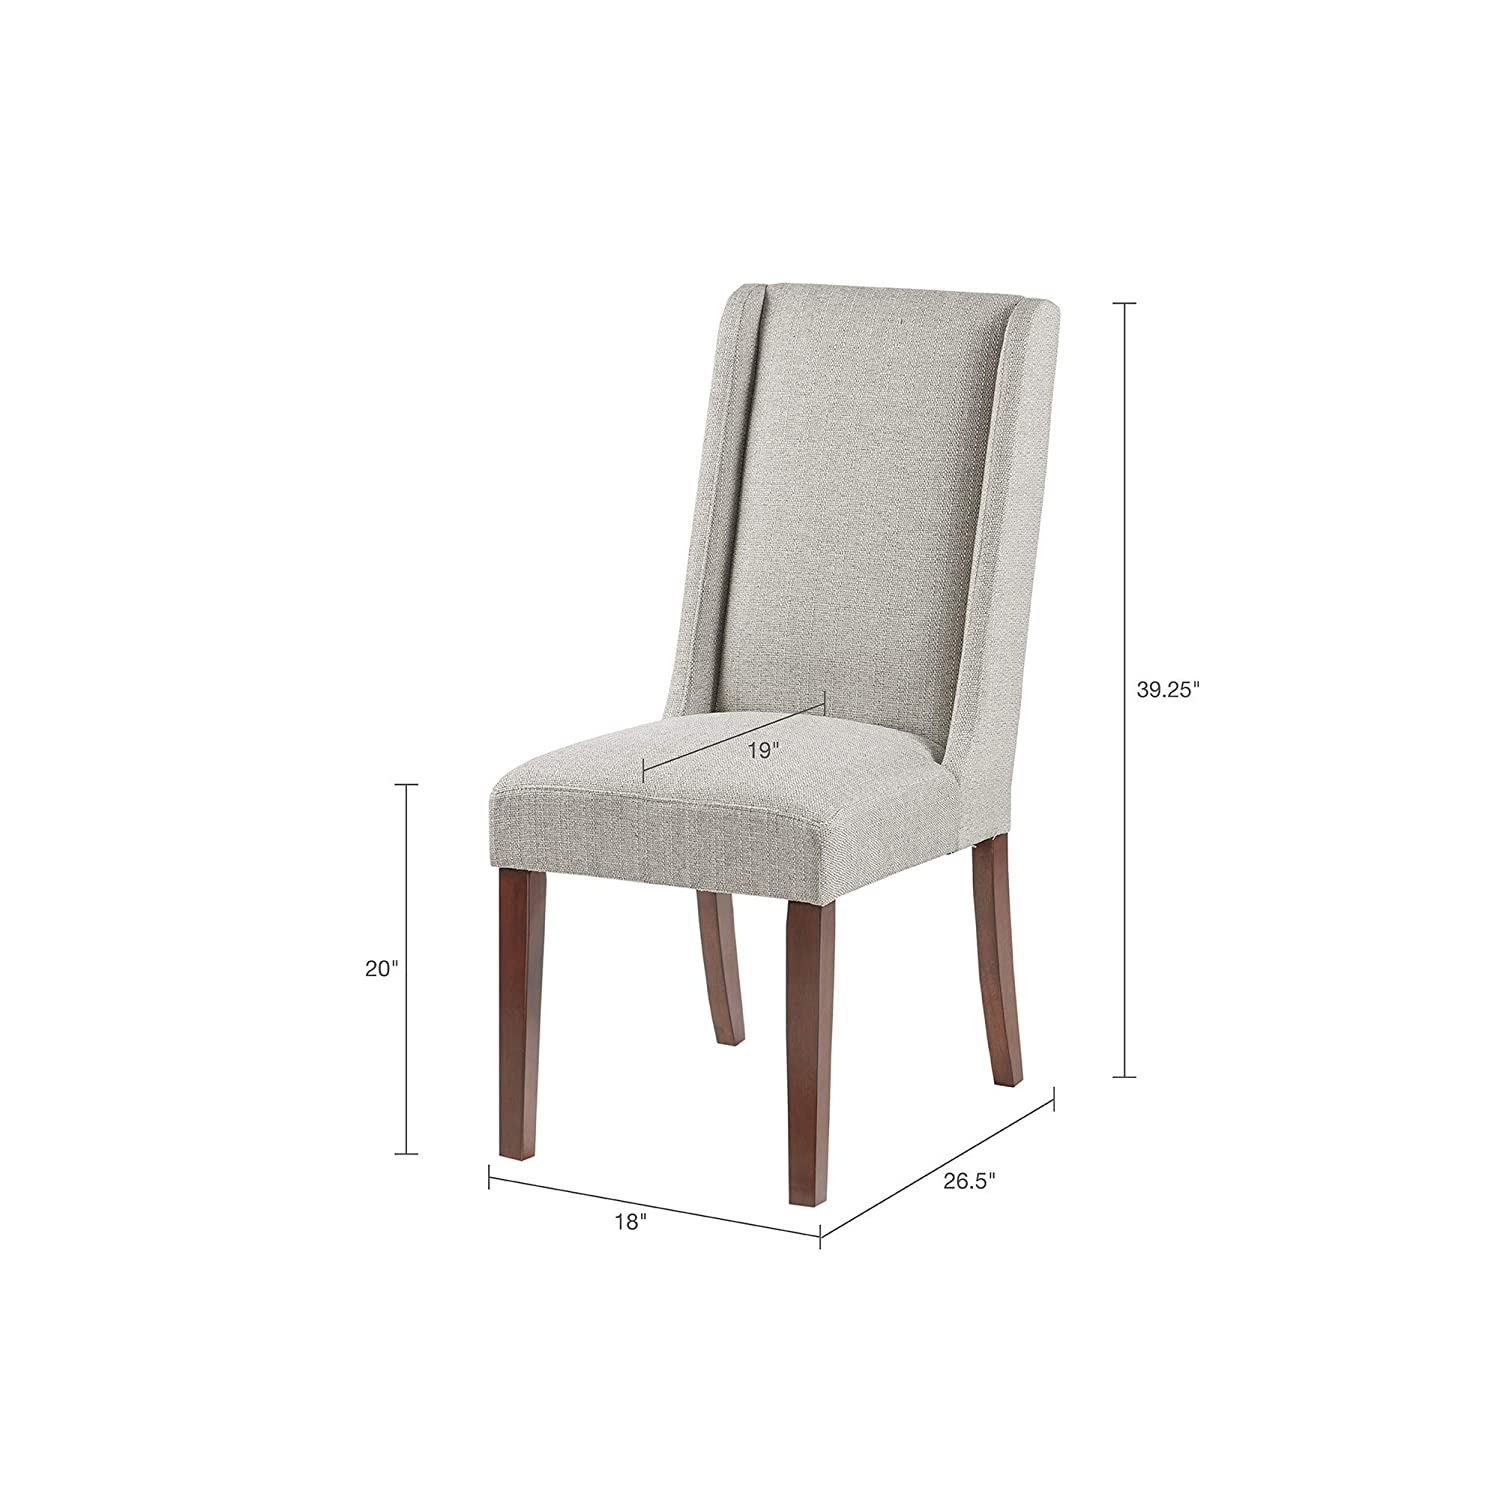 Amazoncom Brody Wing Dining Chair Set Of 2 Creamgrey See Below